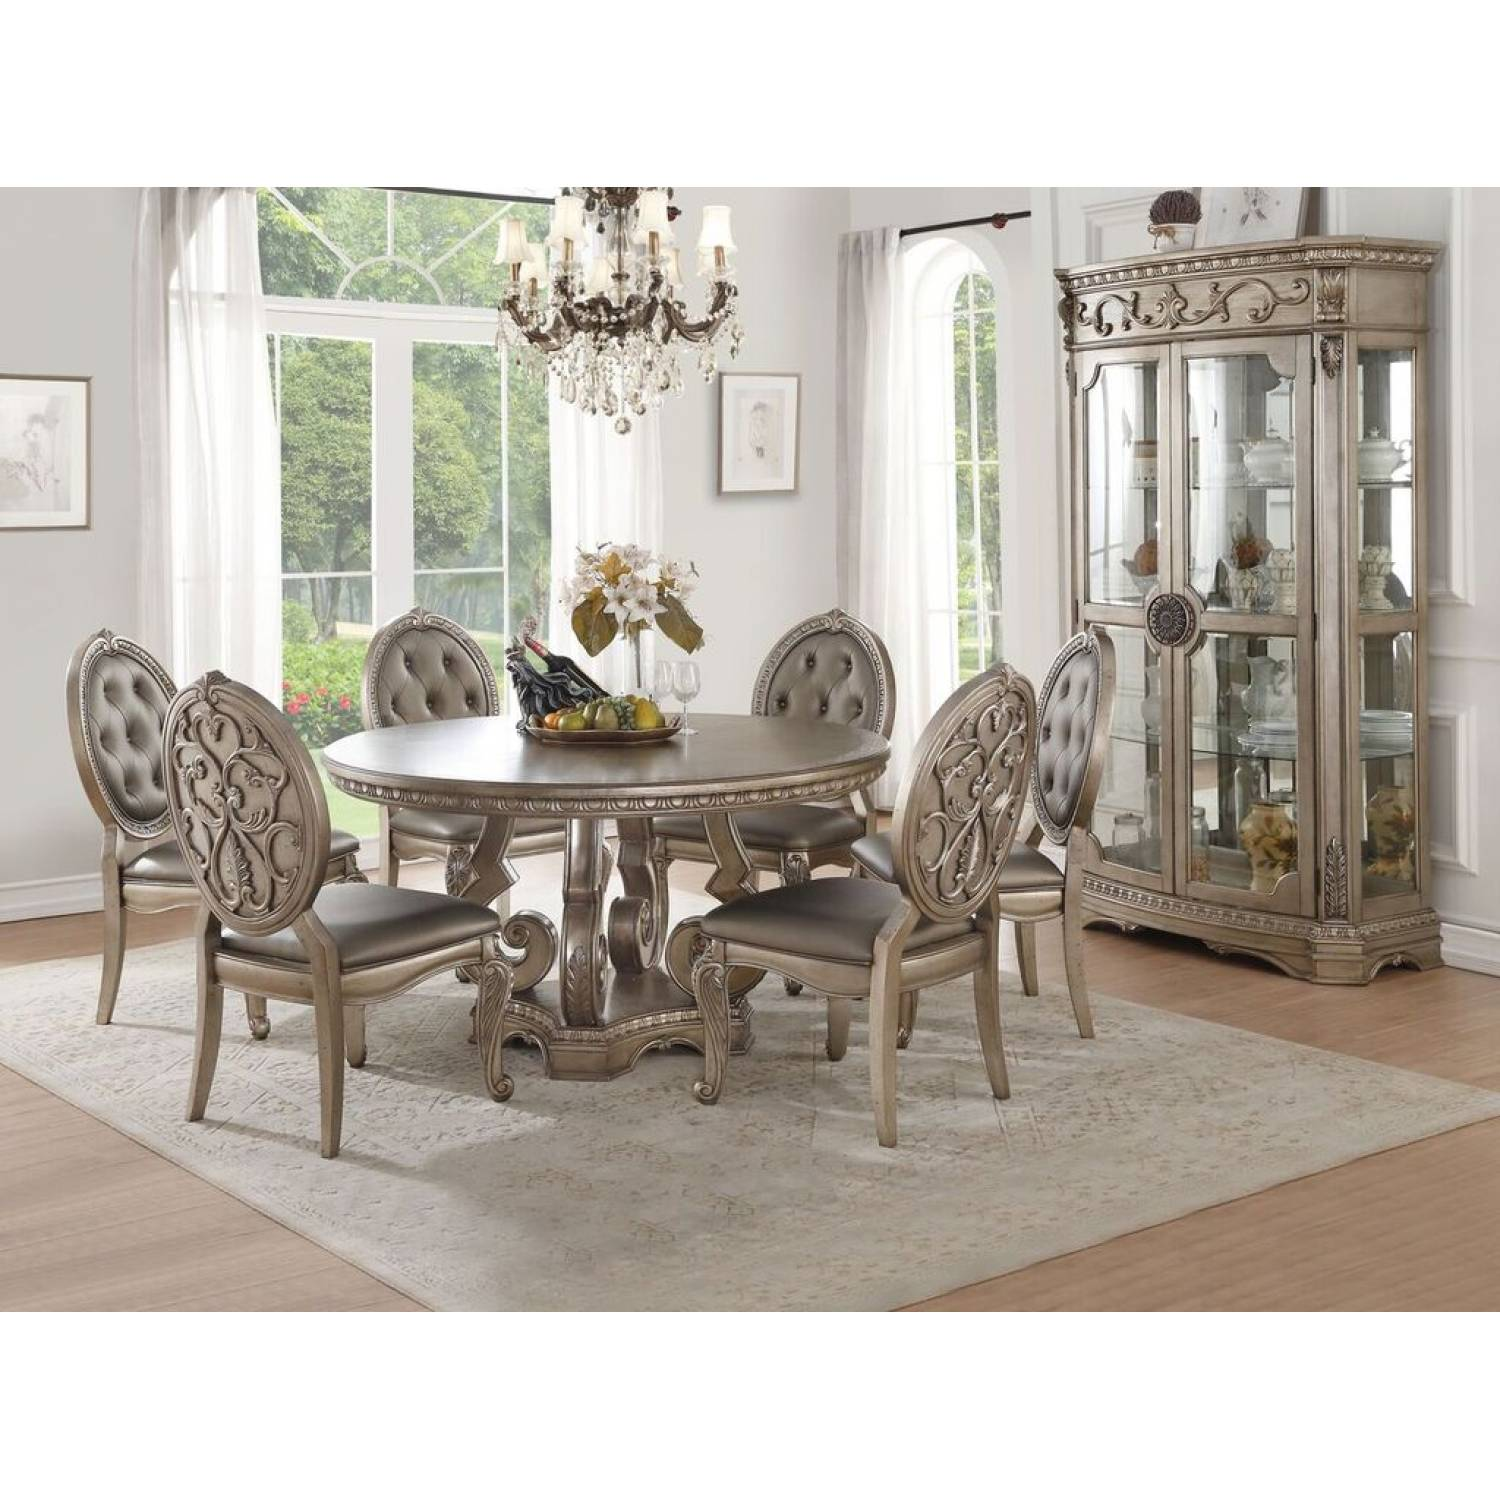 66915 66922 6 7pc Sets Round Dining Table 6 Side Chairs